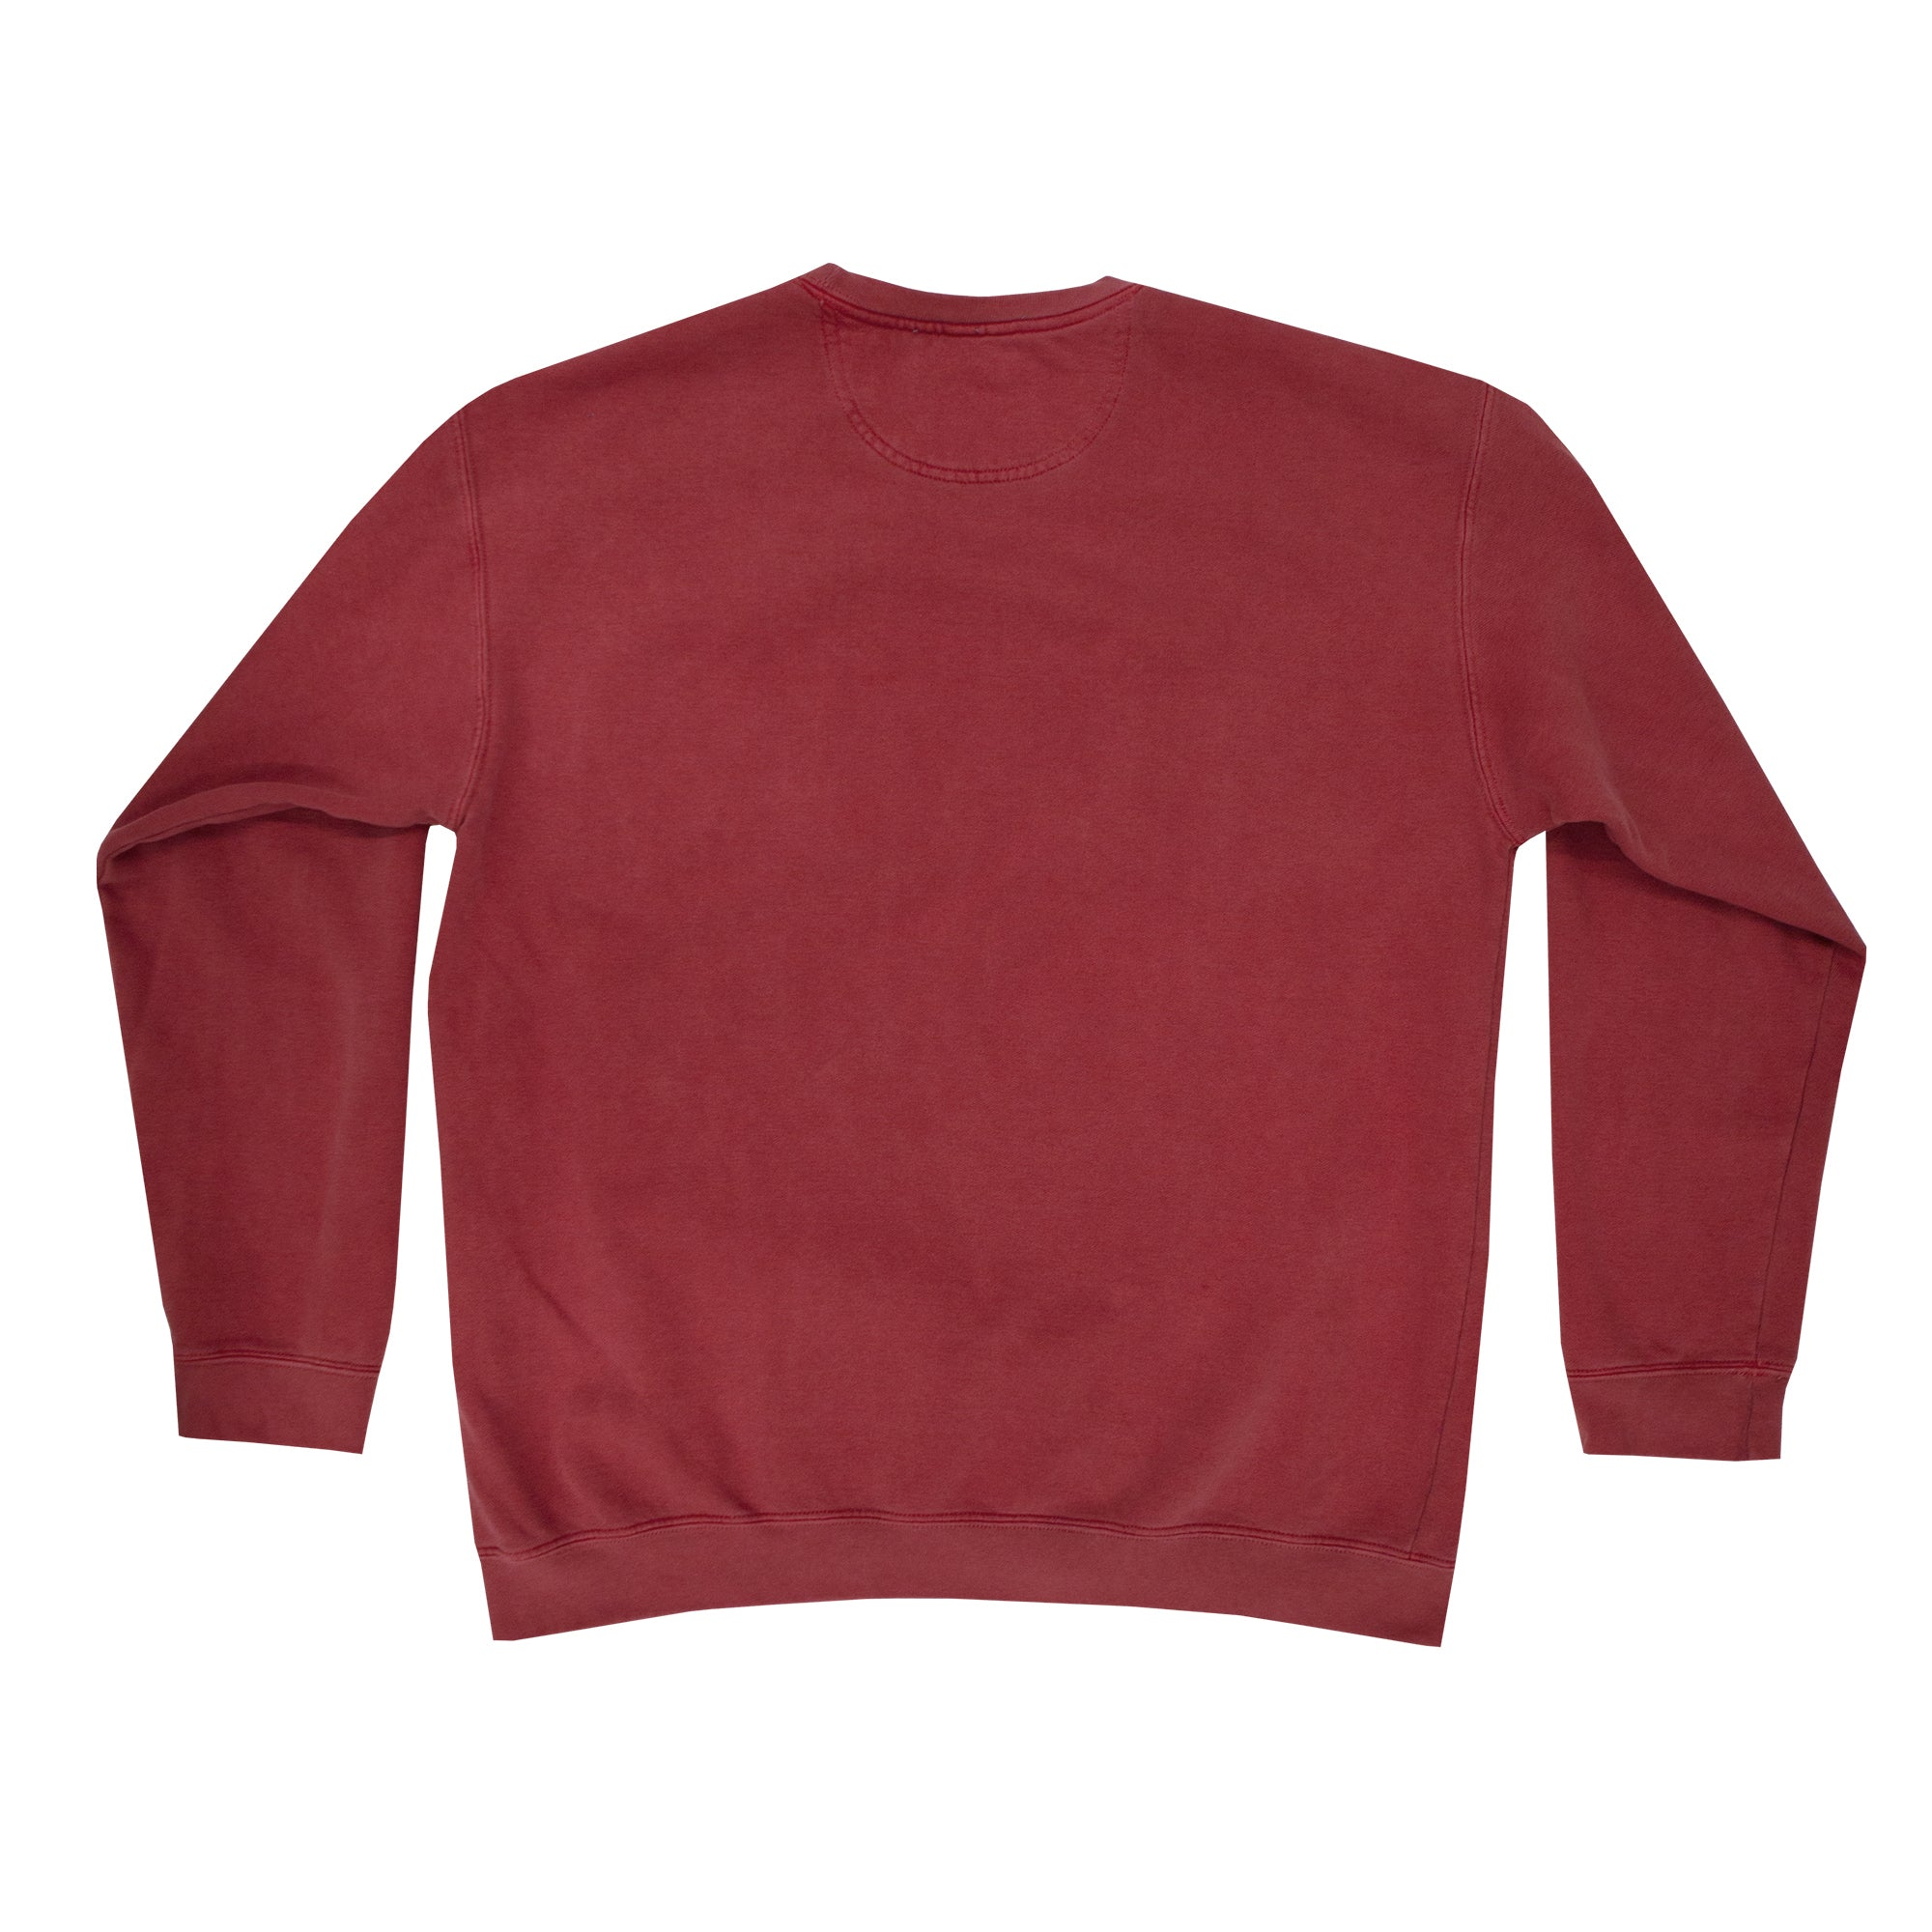 "Fool's Gold ""Spell Out"" Crewneck - Red"